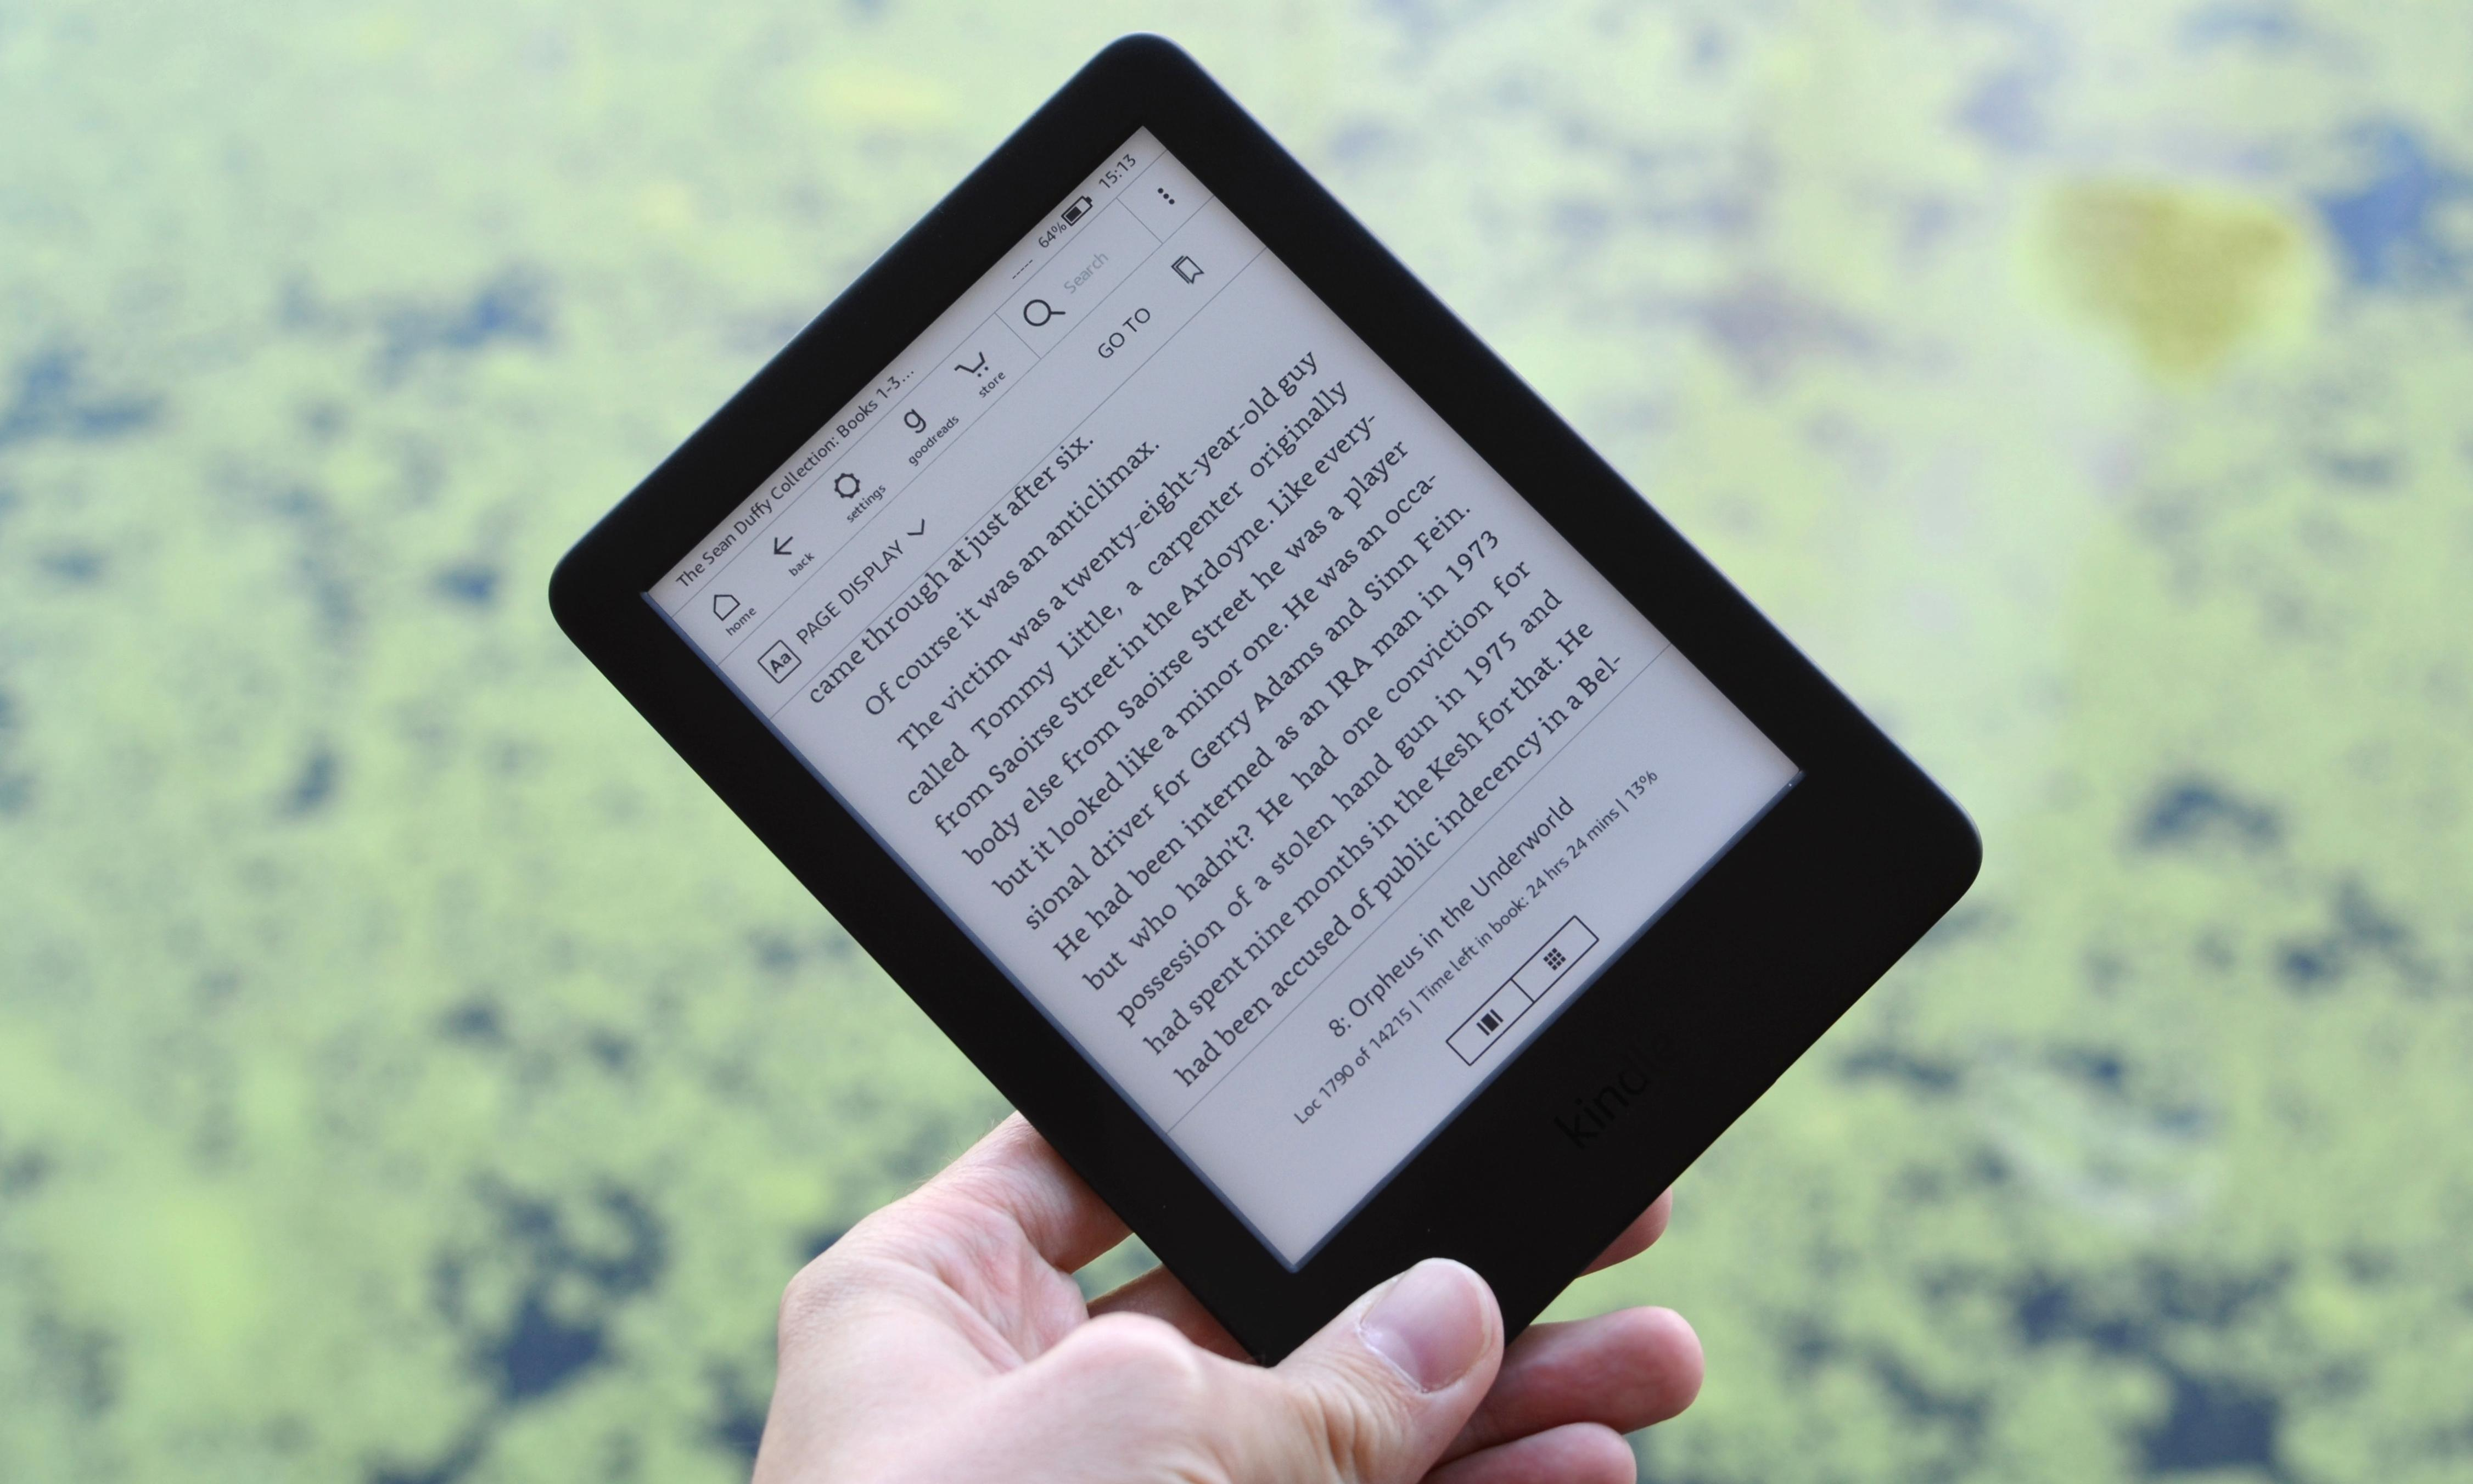 Kindle 2019 review: Amazon's cheapest e-reader gets adjustable frontlight